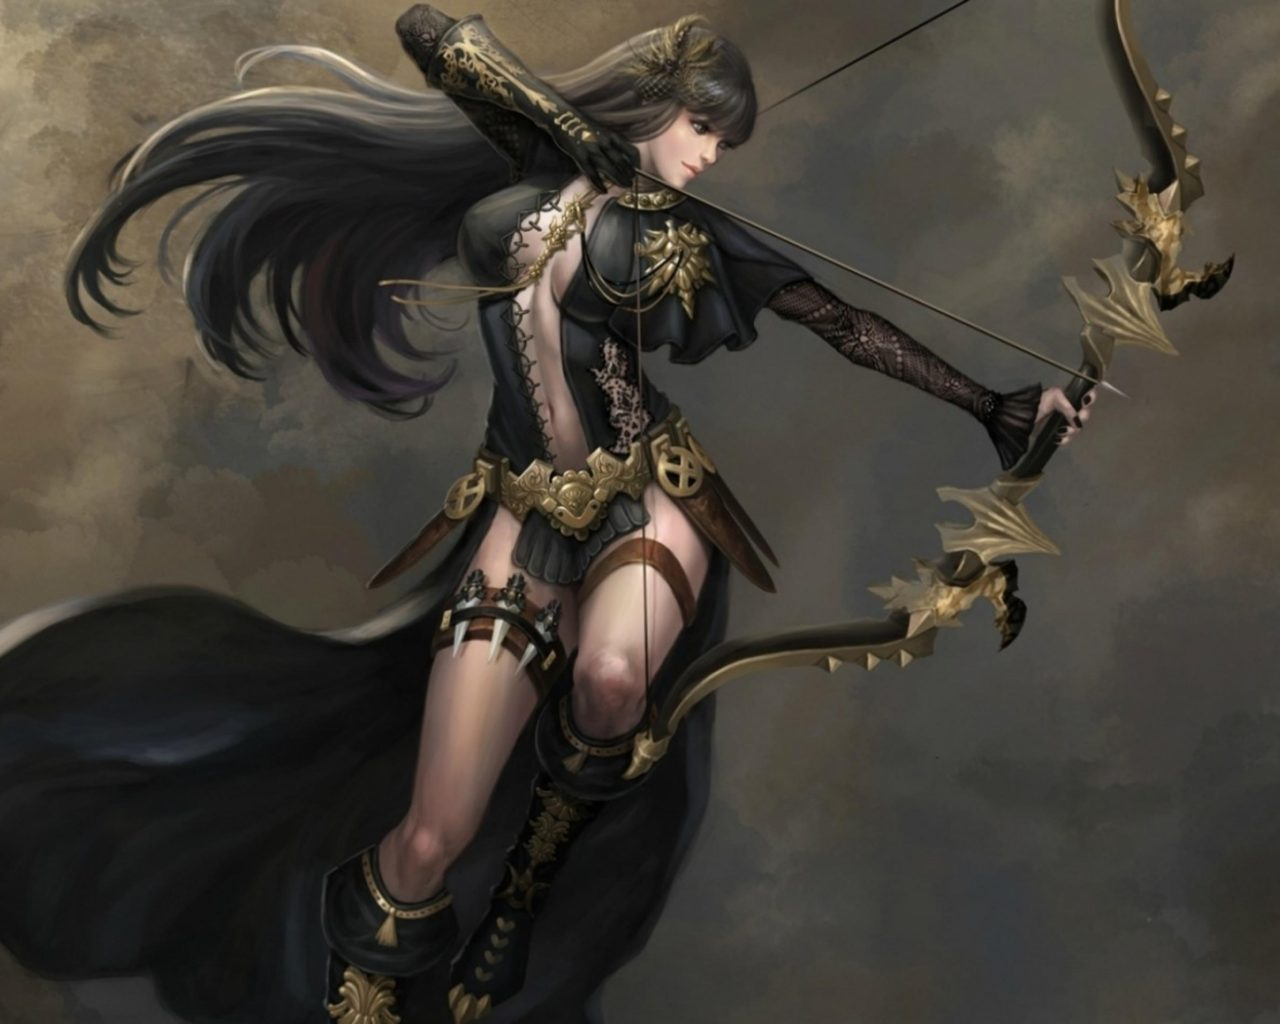 Arrow Girl Anime Wallpaper Archer Arrow Black Fighter Woman Girl Game Ultra Bow And